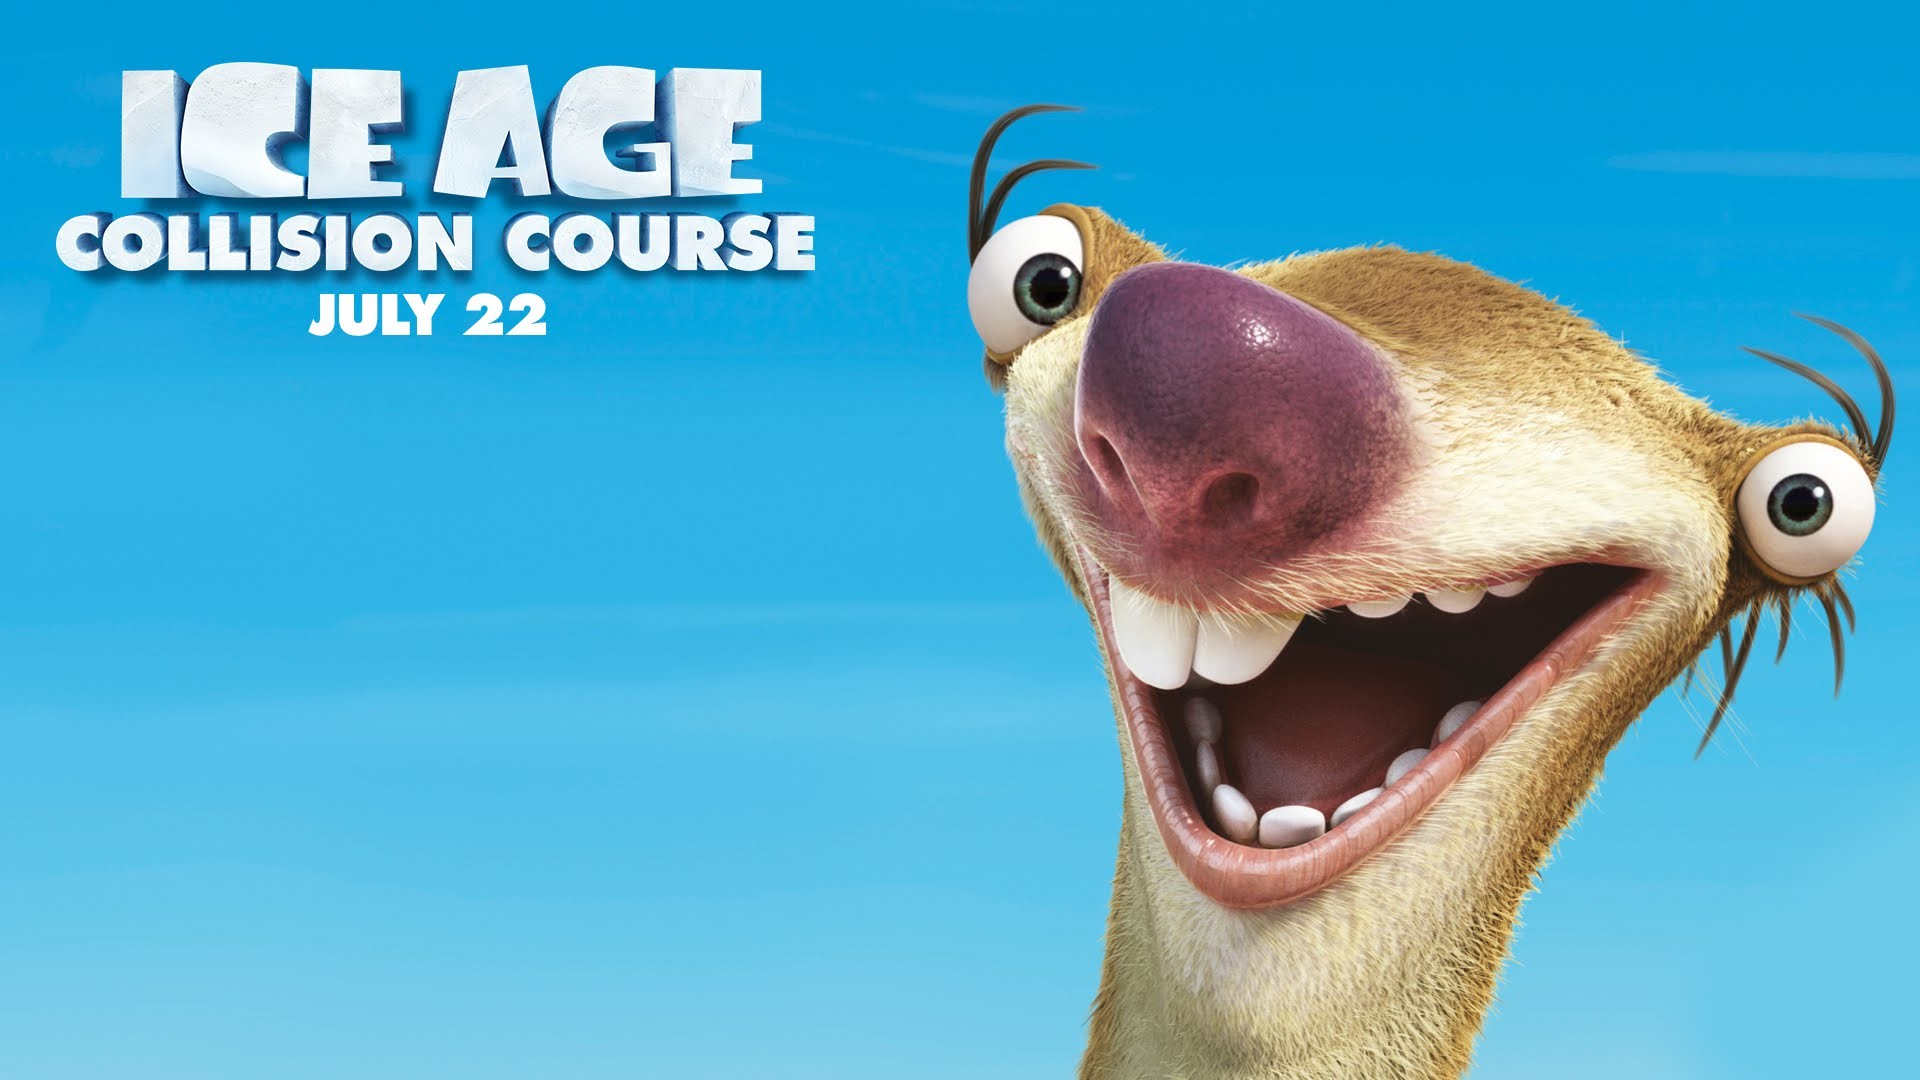 Ice Age Collision CourseAnimation wallpapers (59 Wallpapers) – HD Wallpapers